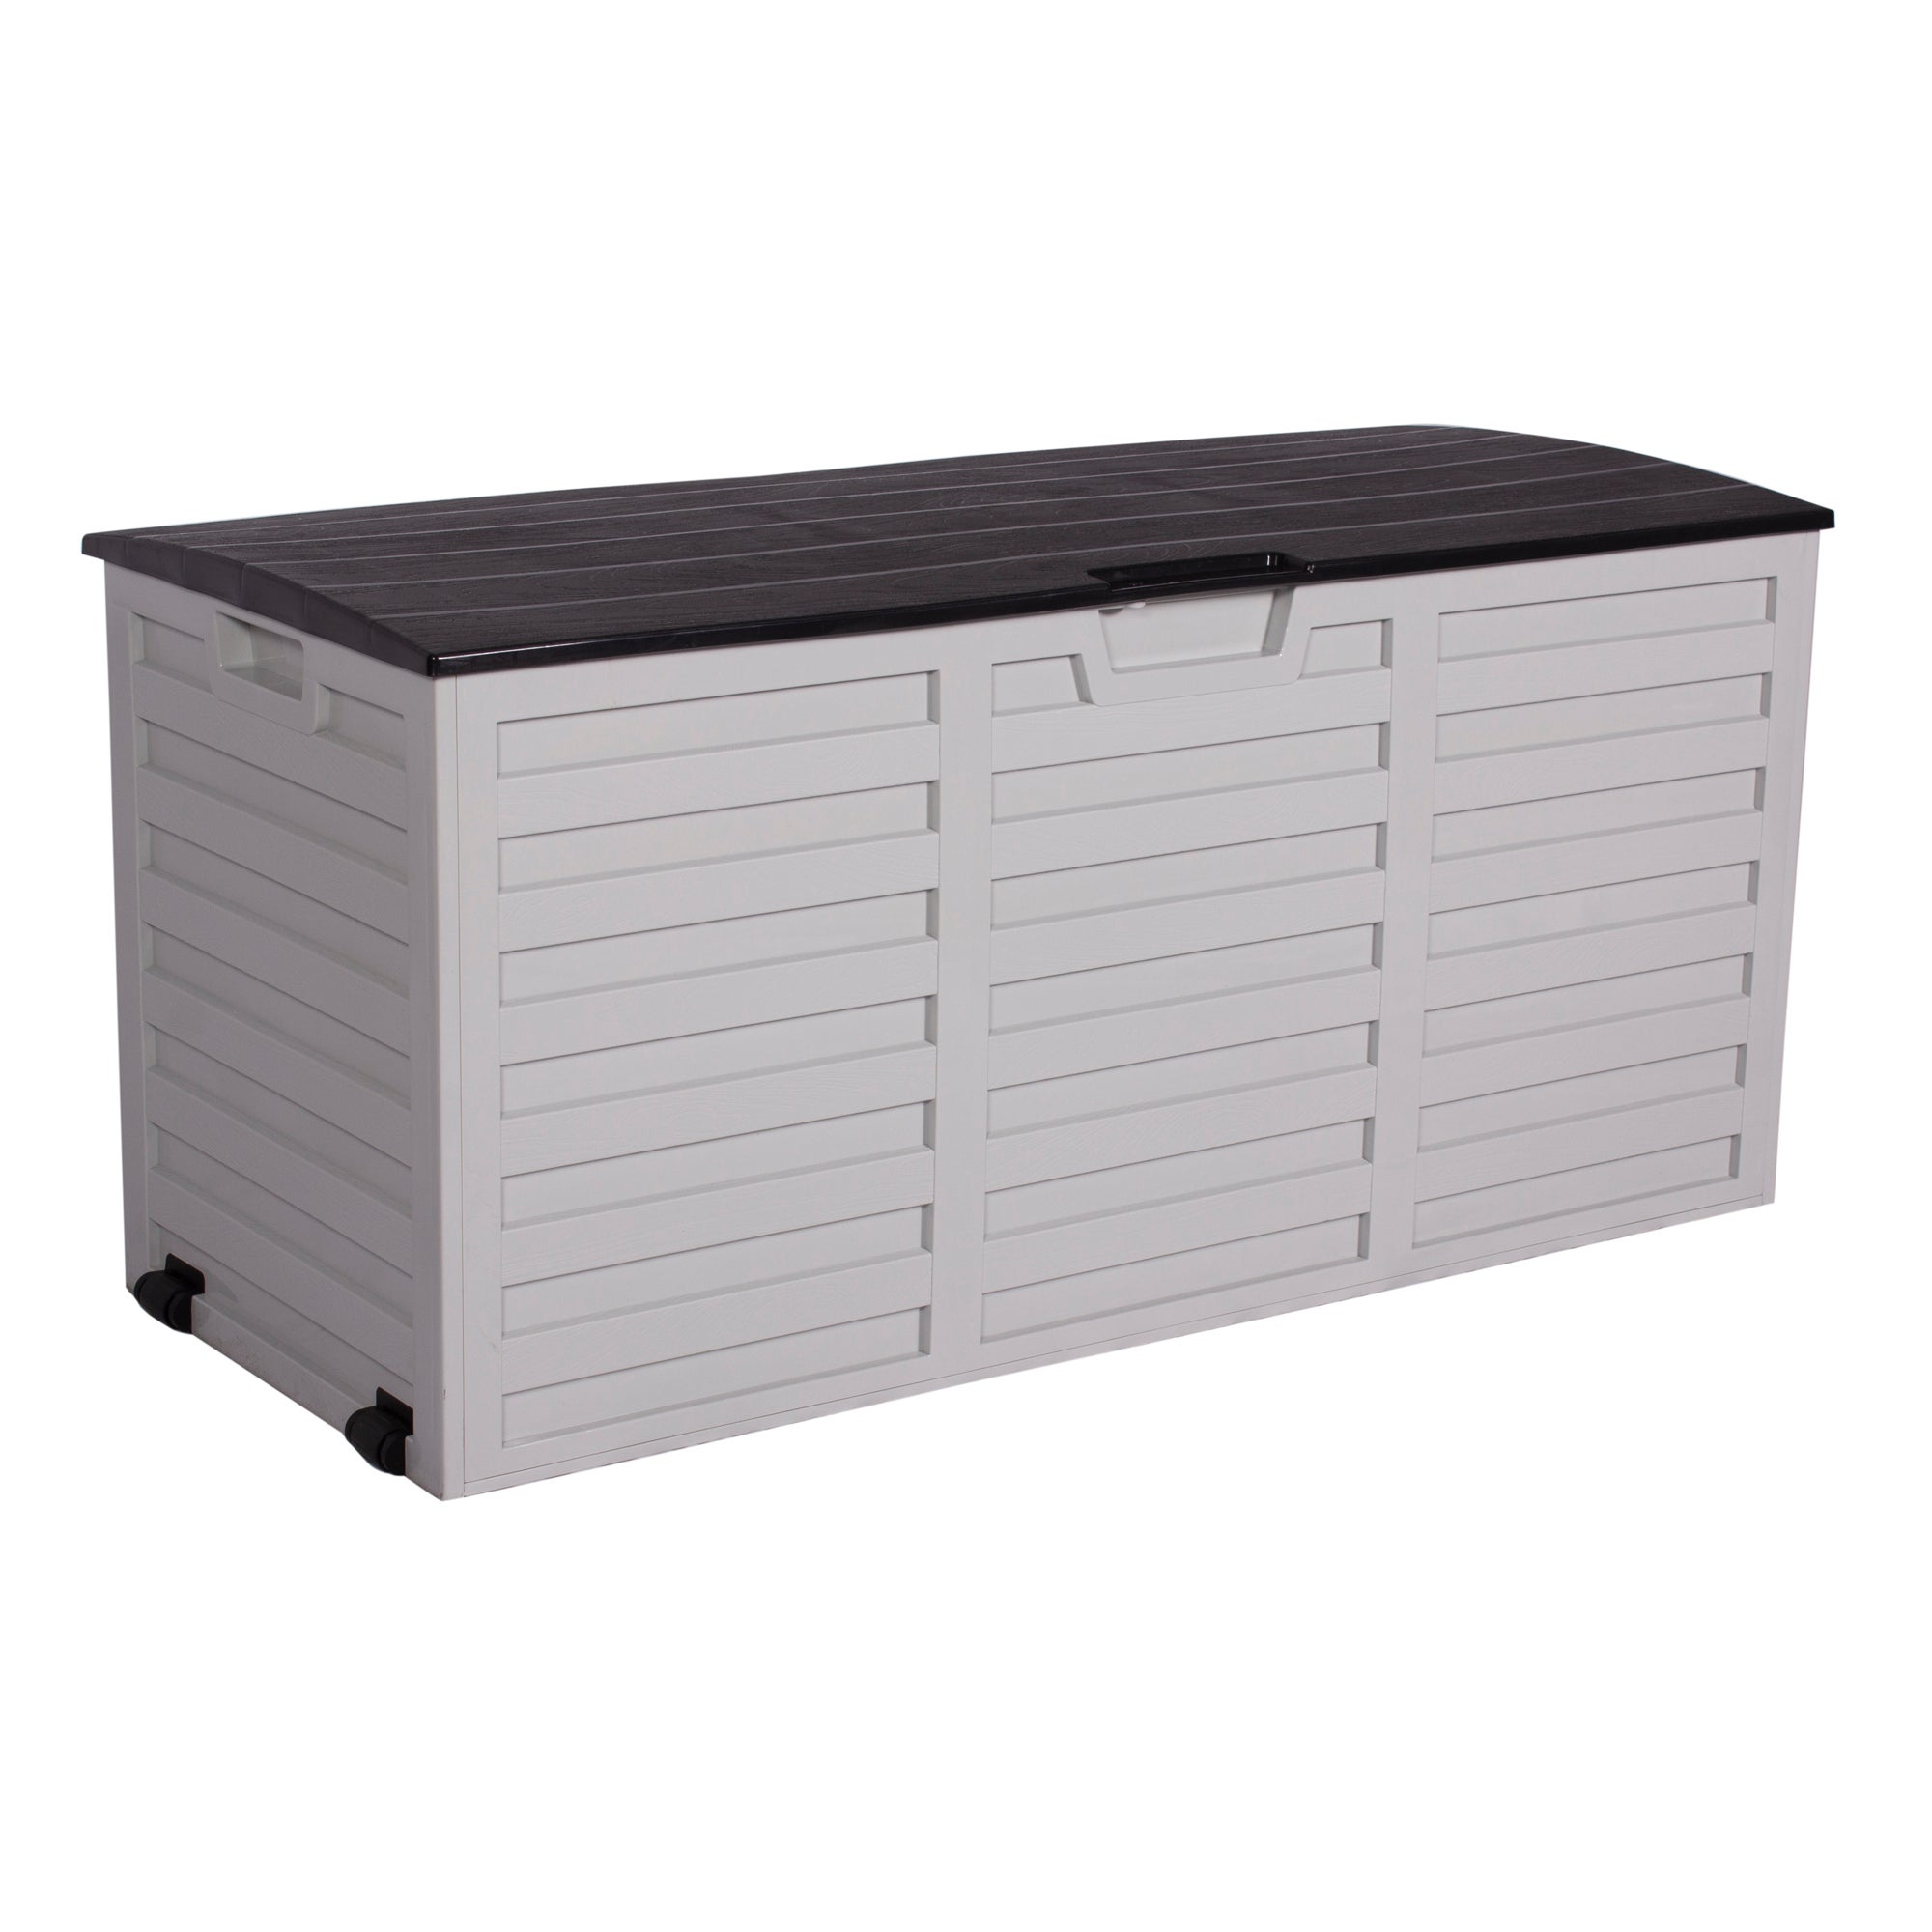 White and Black Waterproof Outdoor Storage Box with Wheels White